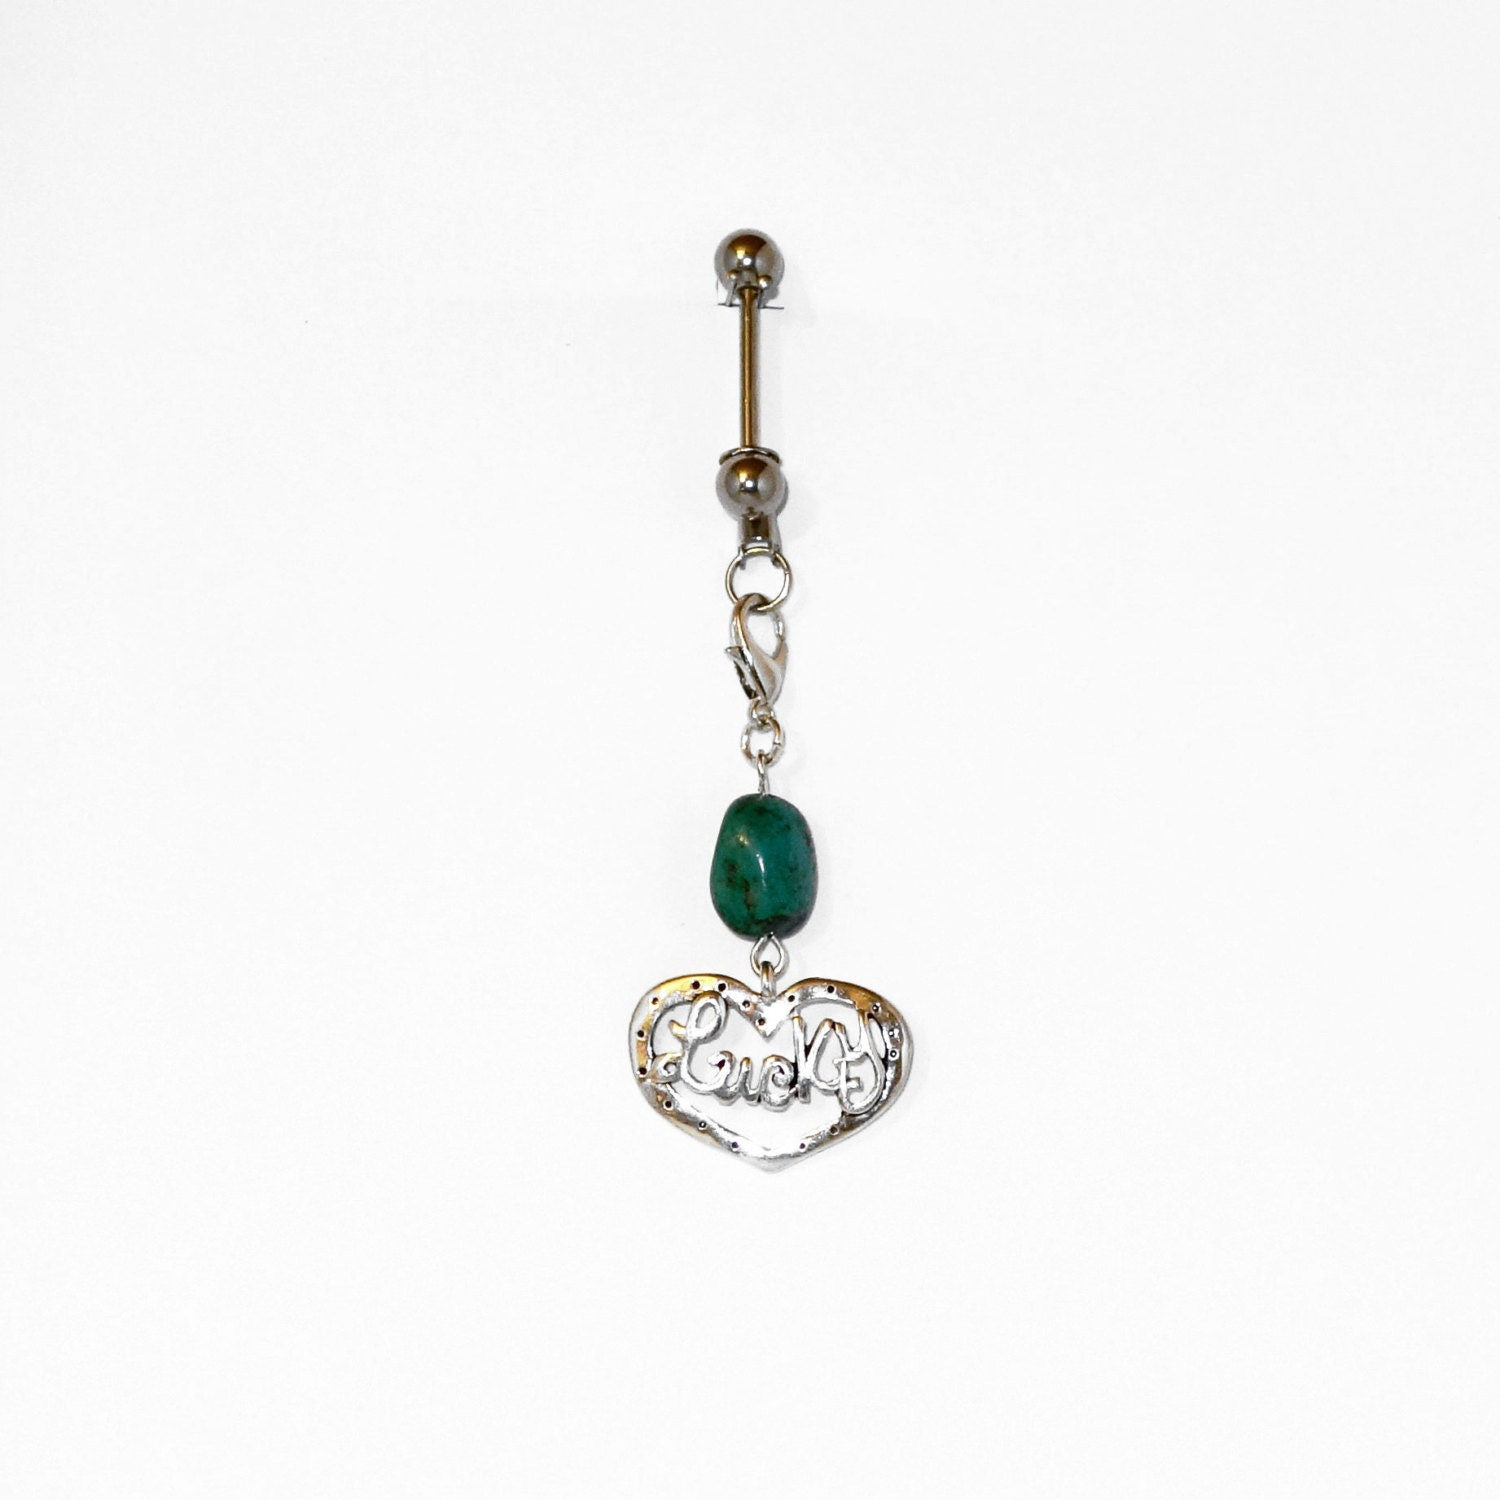 Nonpiercing or VCH Vertical Clit Hood Piercing Jewelry